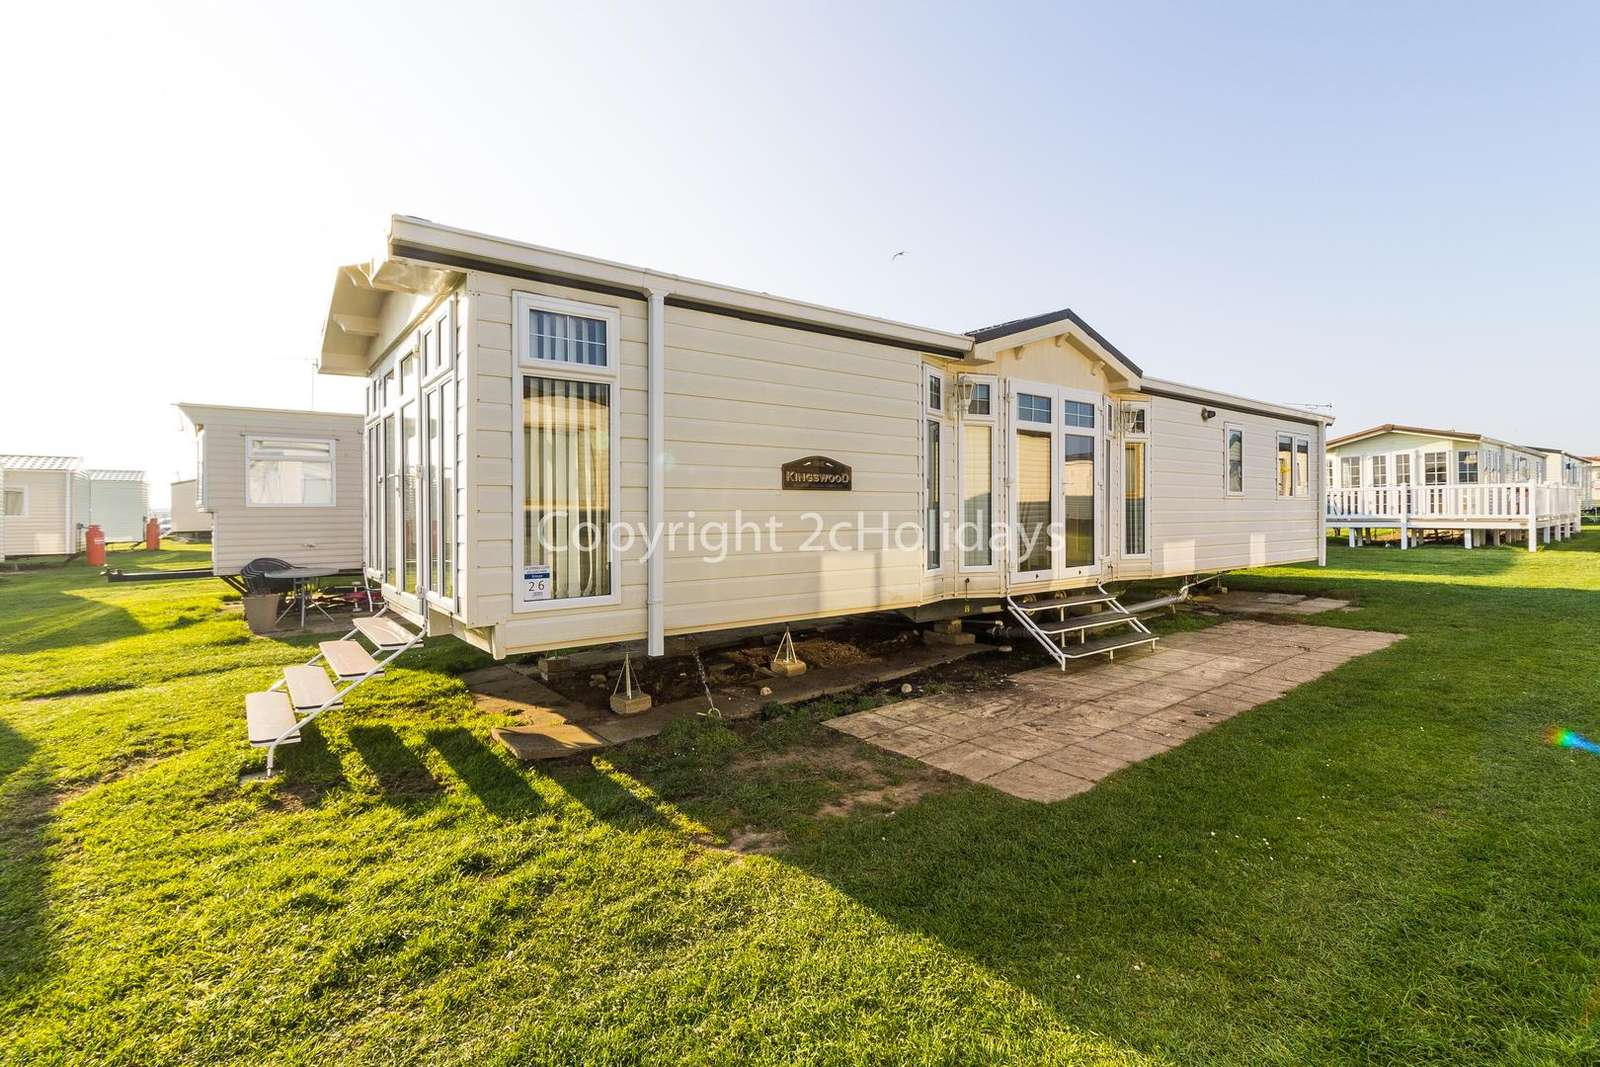 Only a short walk from Scratby beach! - property